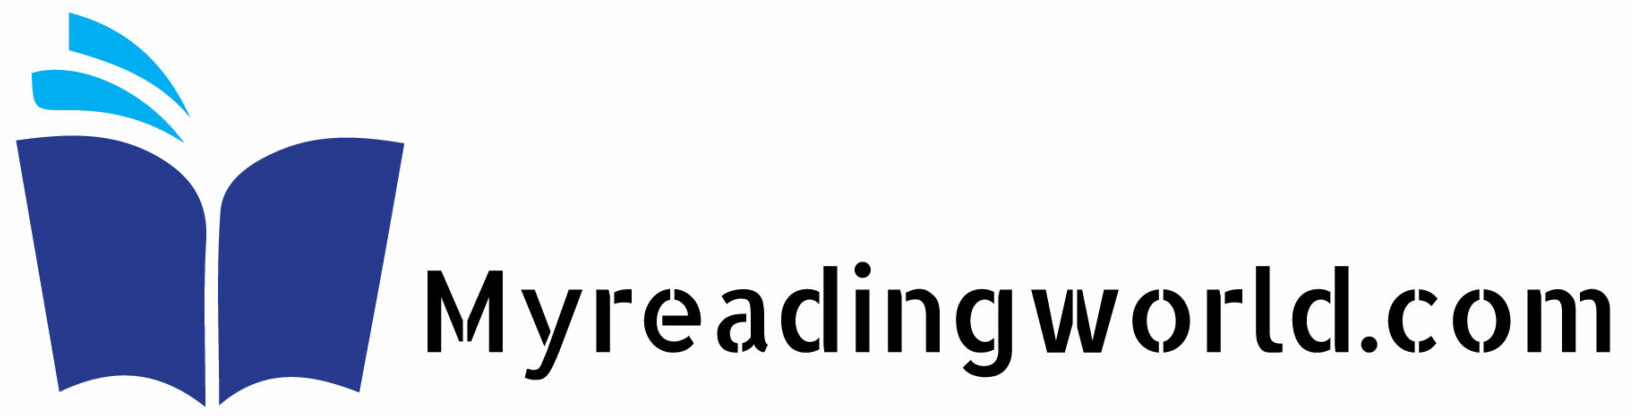 MyReadingWorld